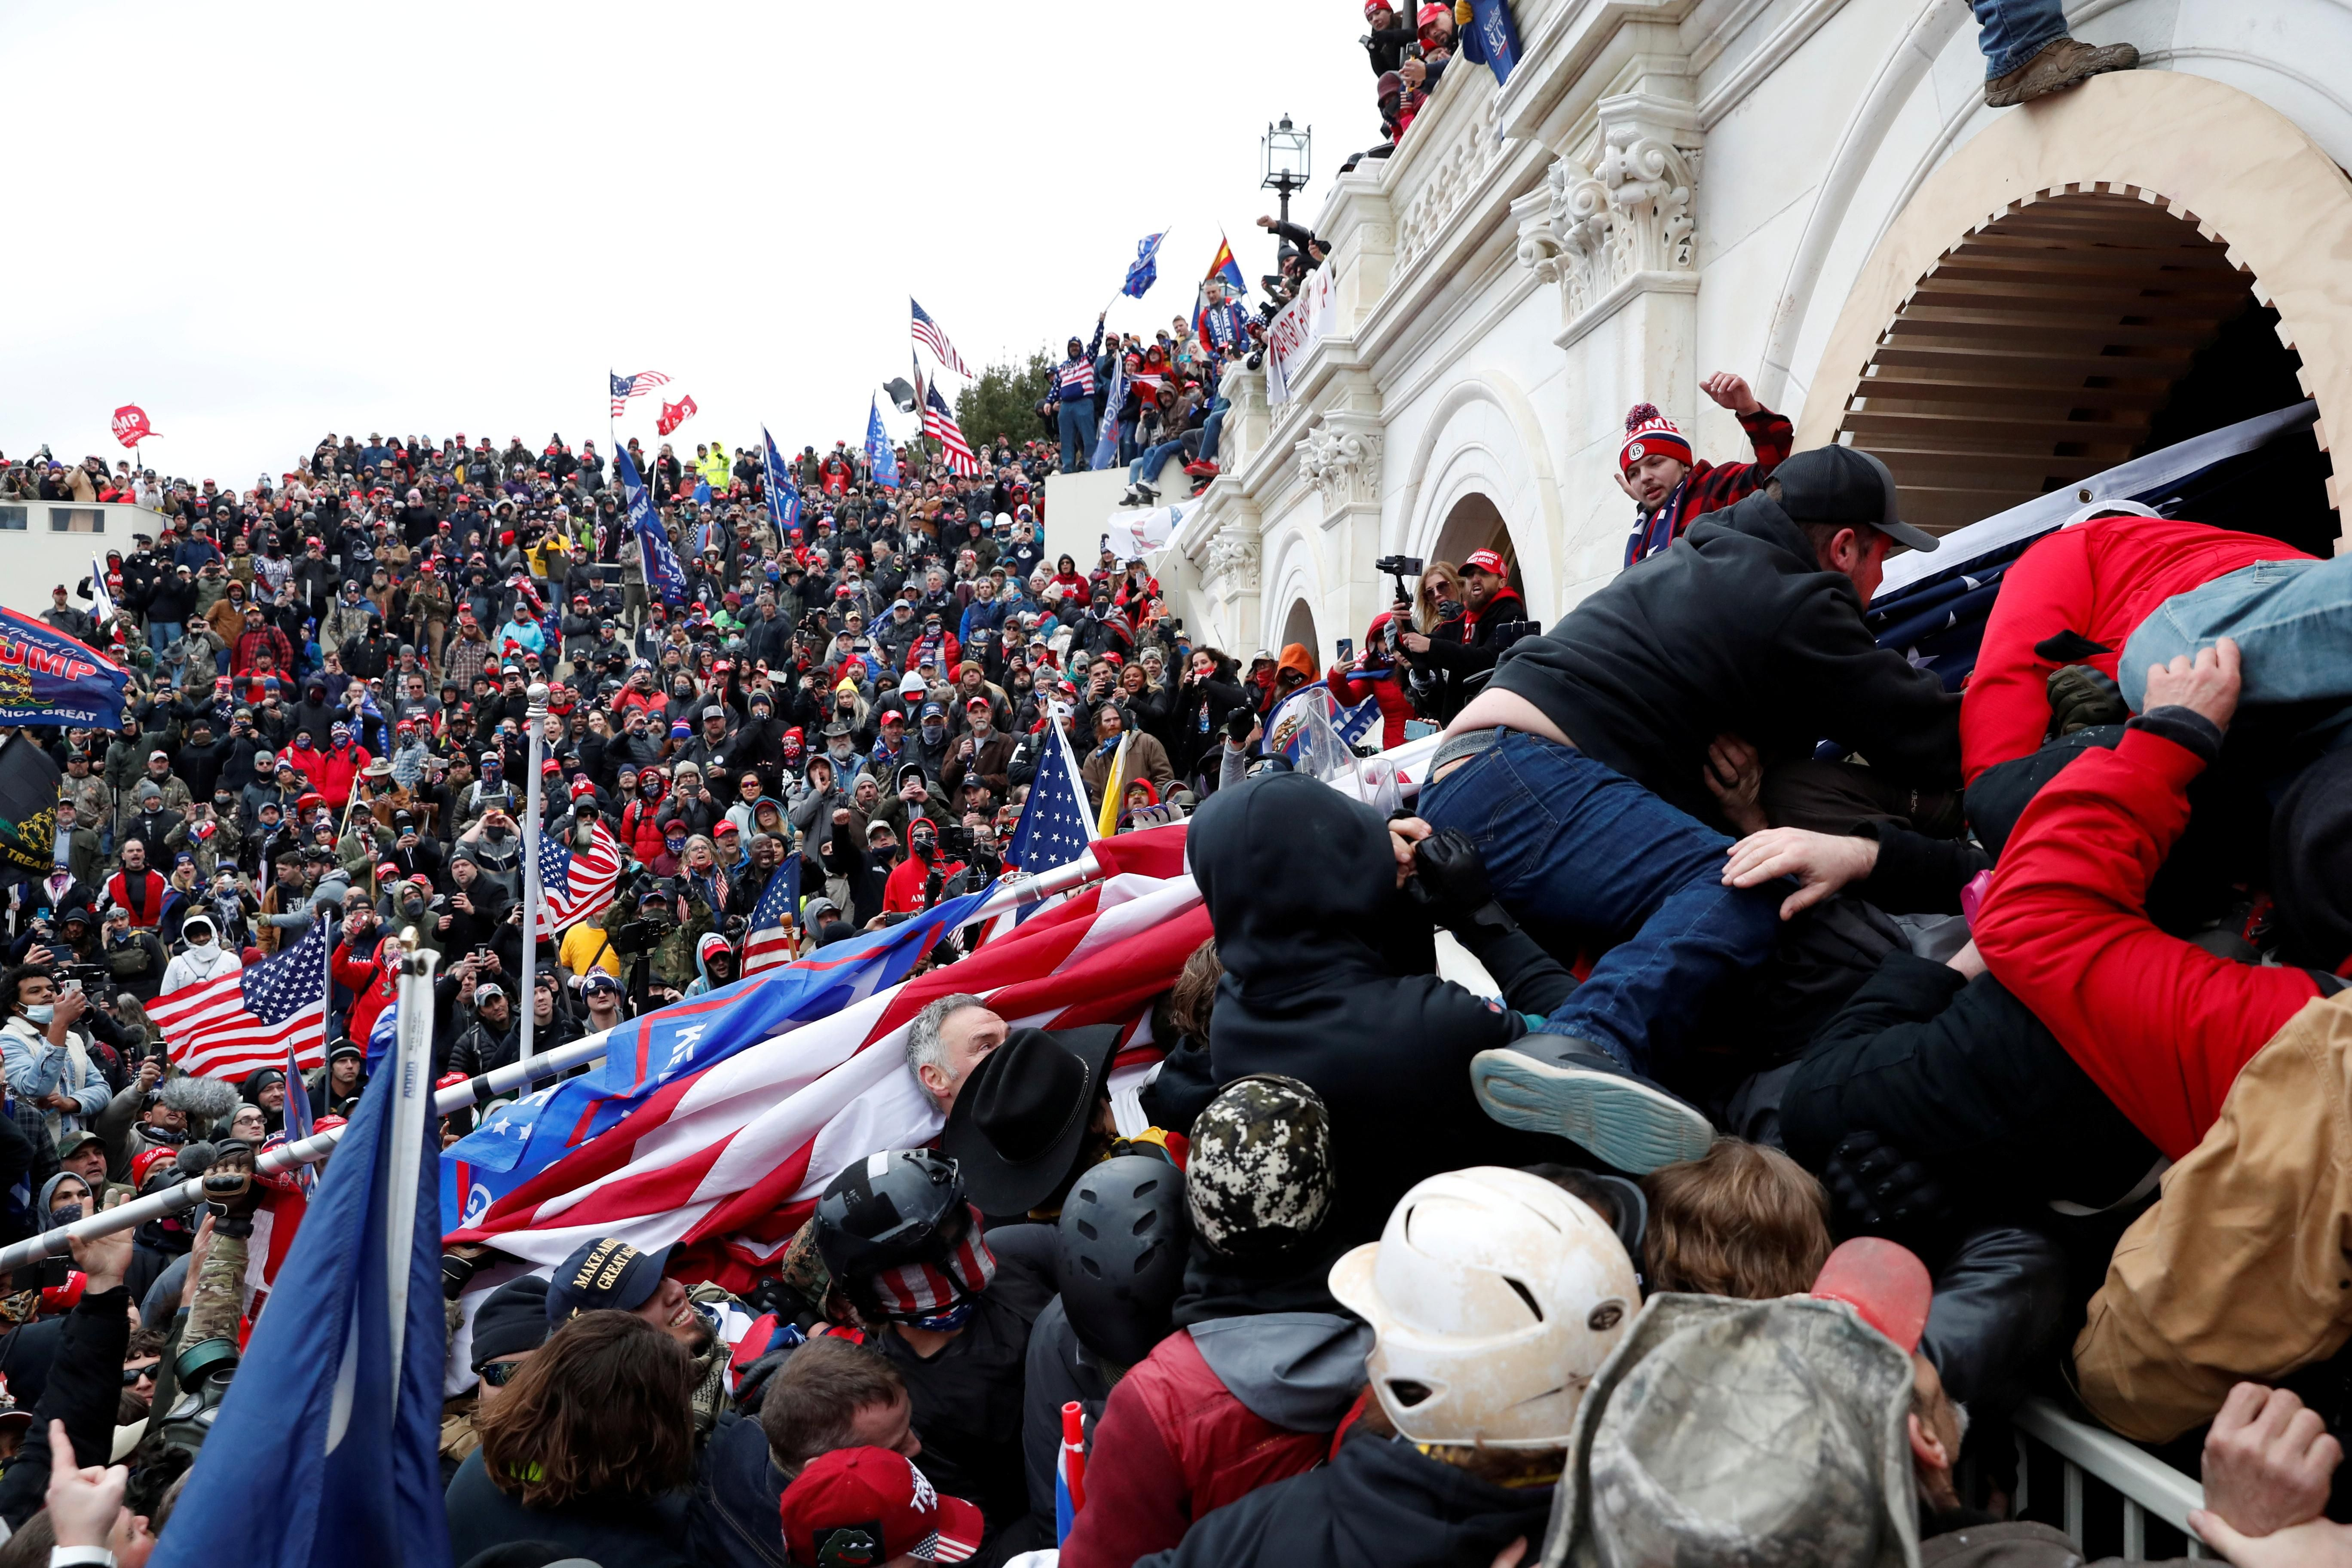 Pro-Trump protesters storm into the U.S. Capitol during clashes with police. Reuters